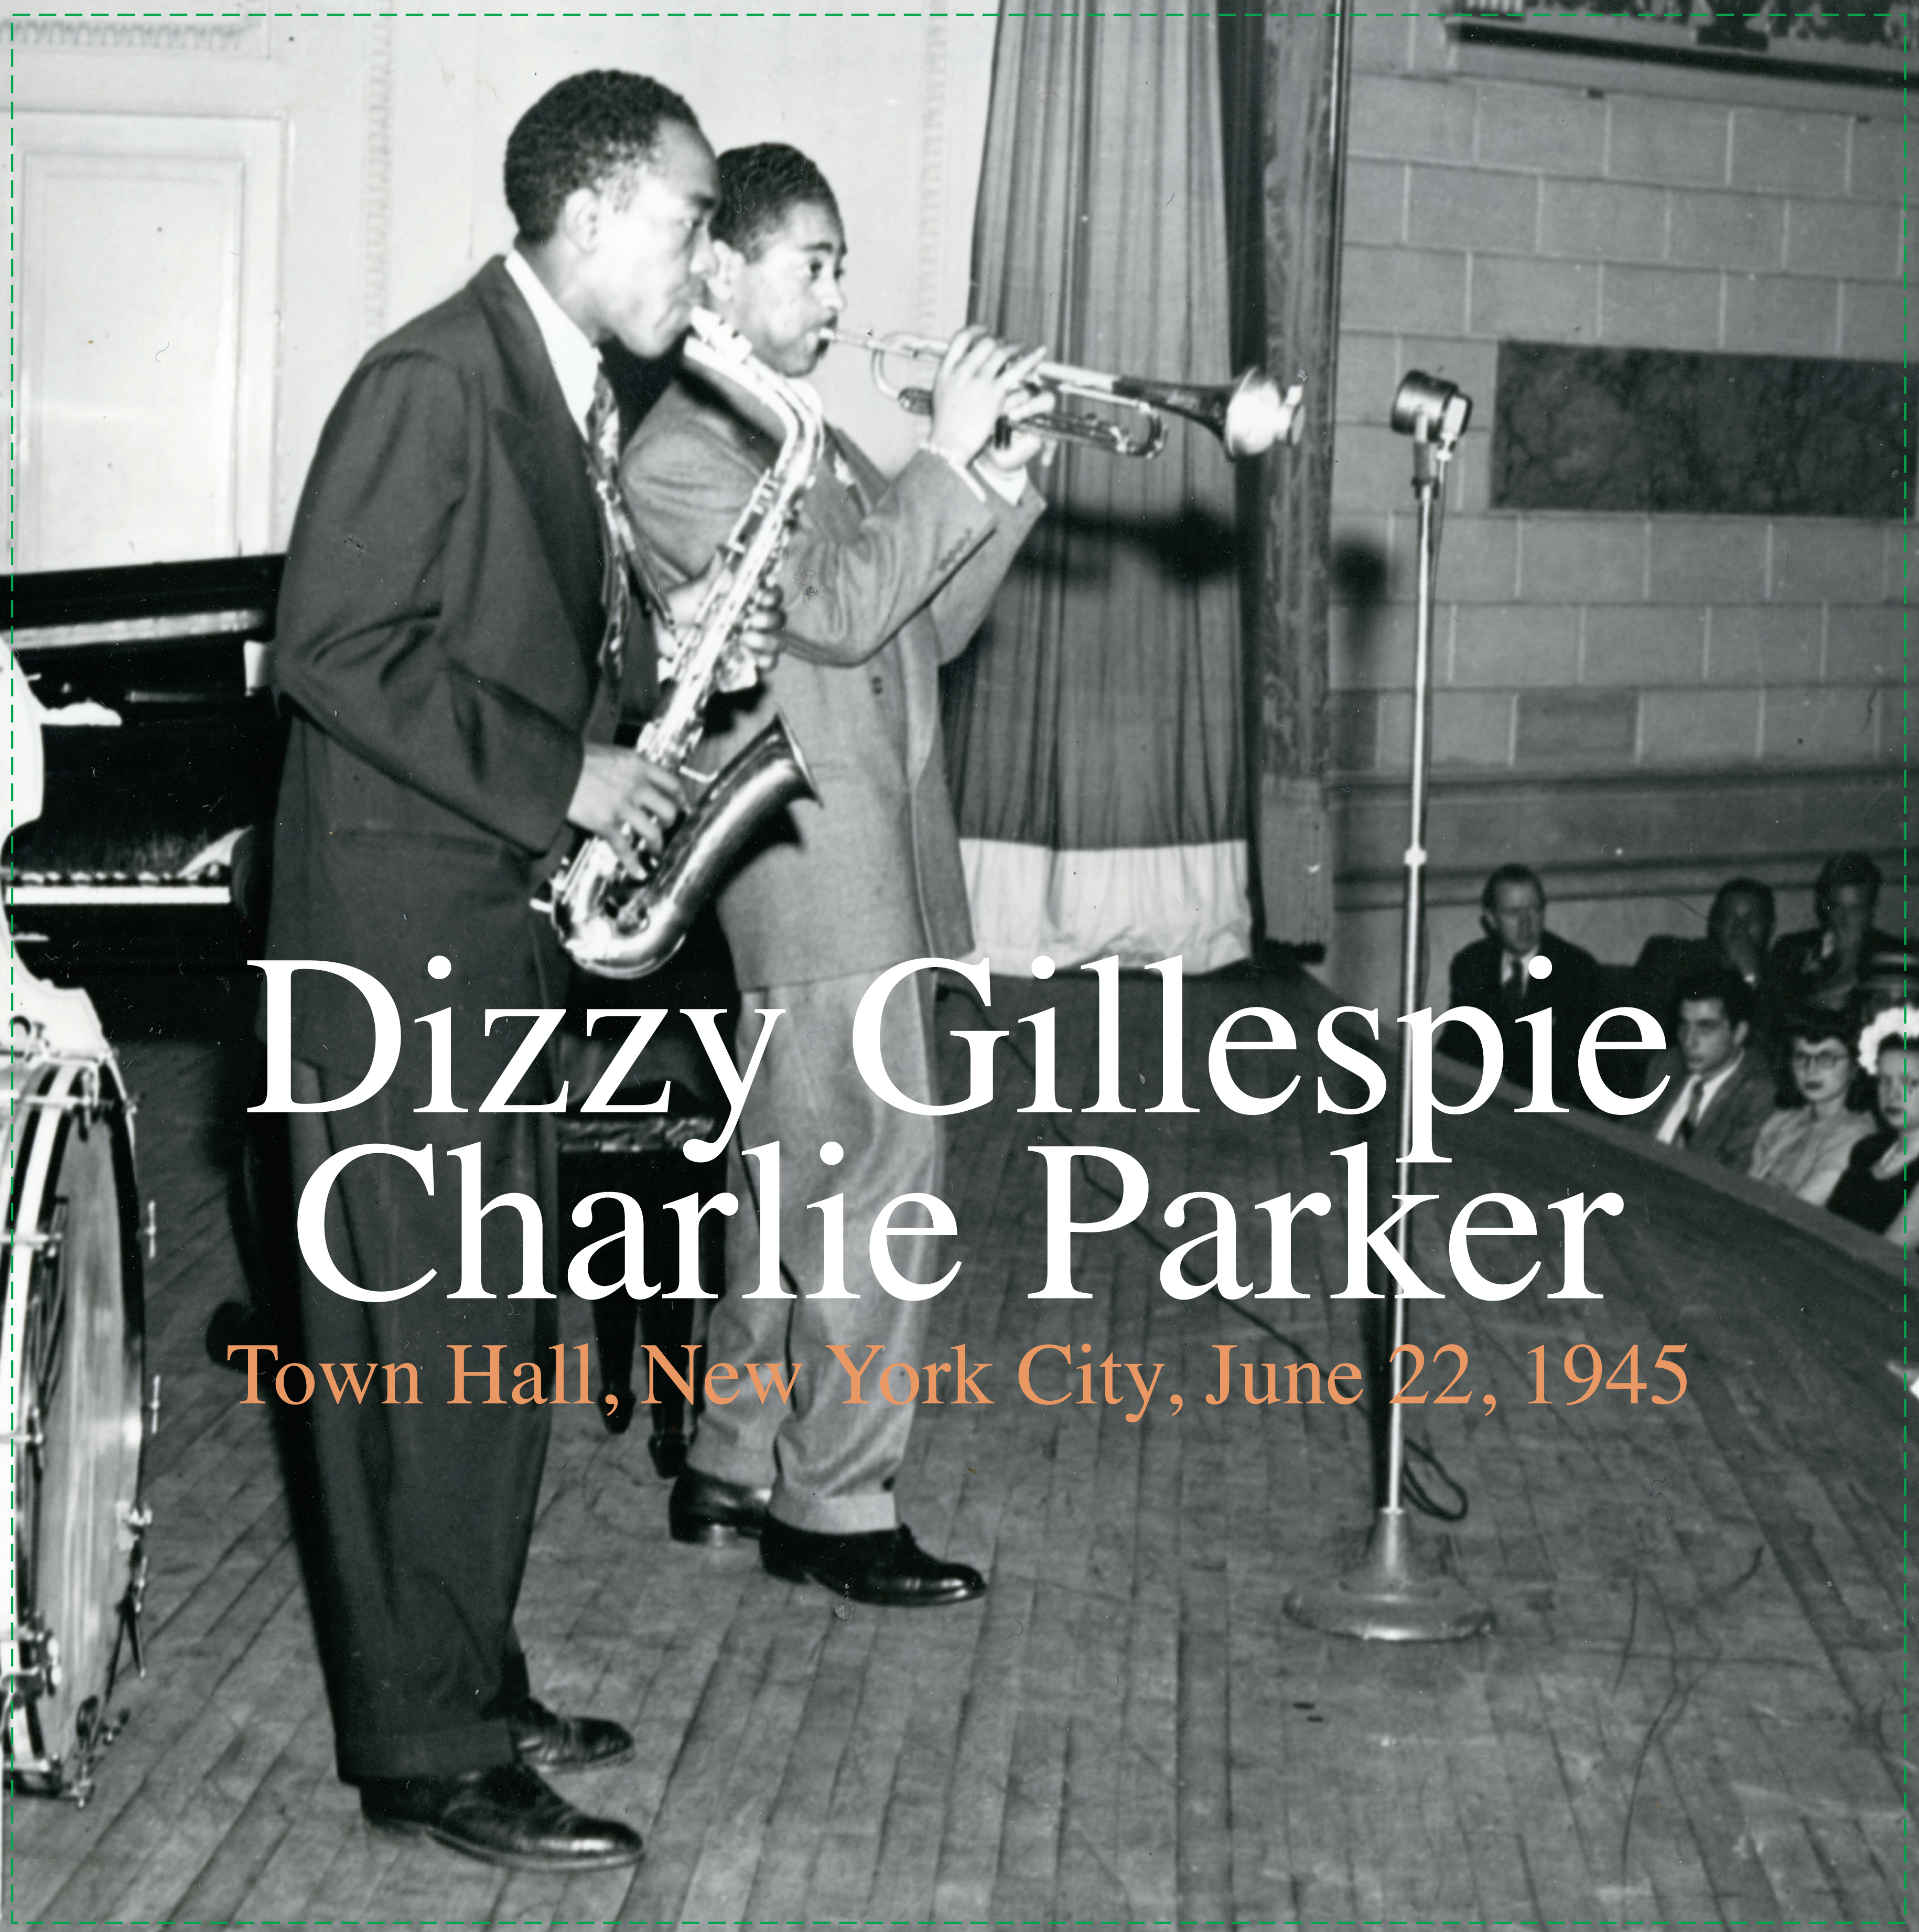 Dizzy Gillespie / Charlie Parker - Town Hall, New York City, June 22, 1945 [RSD Drops Aug 2020]